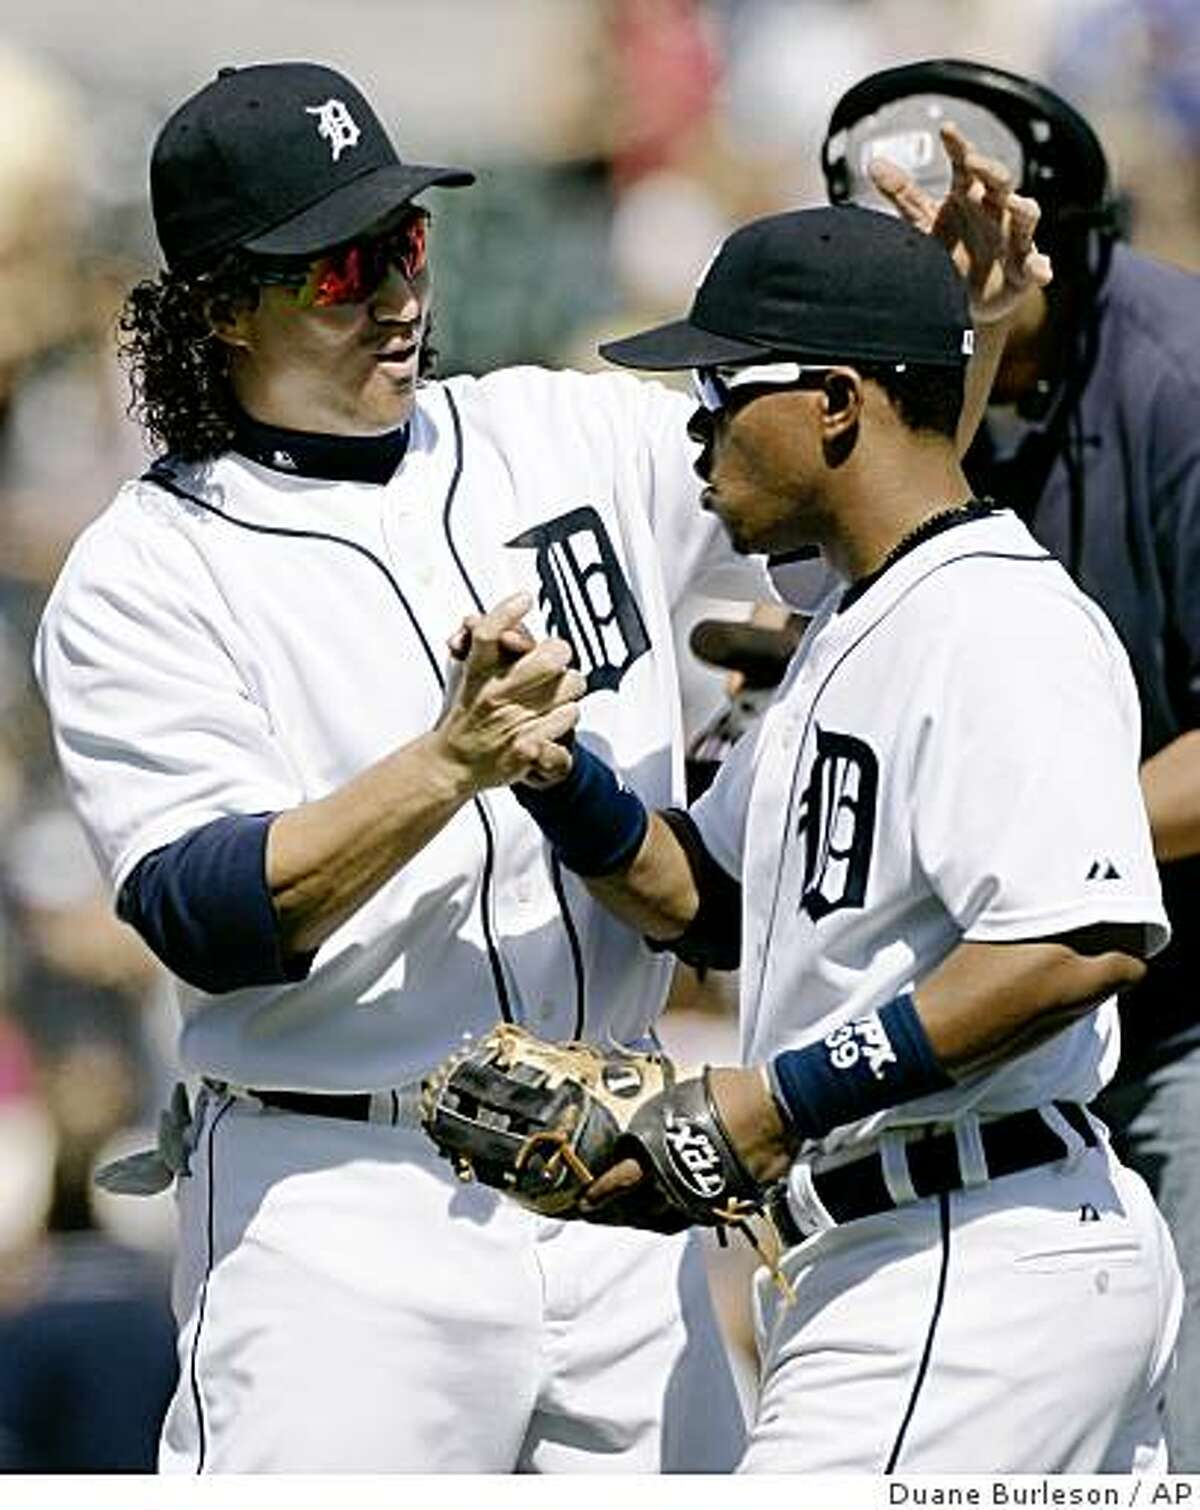 Detroit Tigers' Magglio Ordonez, left, congratulates teammate Ramon Santiago after they defeated the Oakland Athletics 11-7 in a game Sunday, May 17, 2009, in Detroit. Santiago hit a three-run home run and drove in a fourth run in the Tigers' 11-7 win.